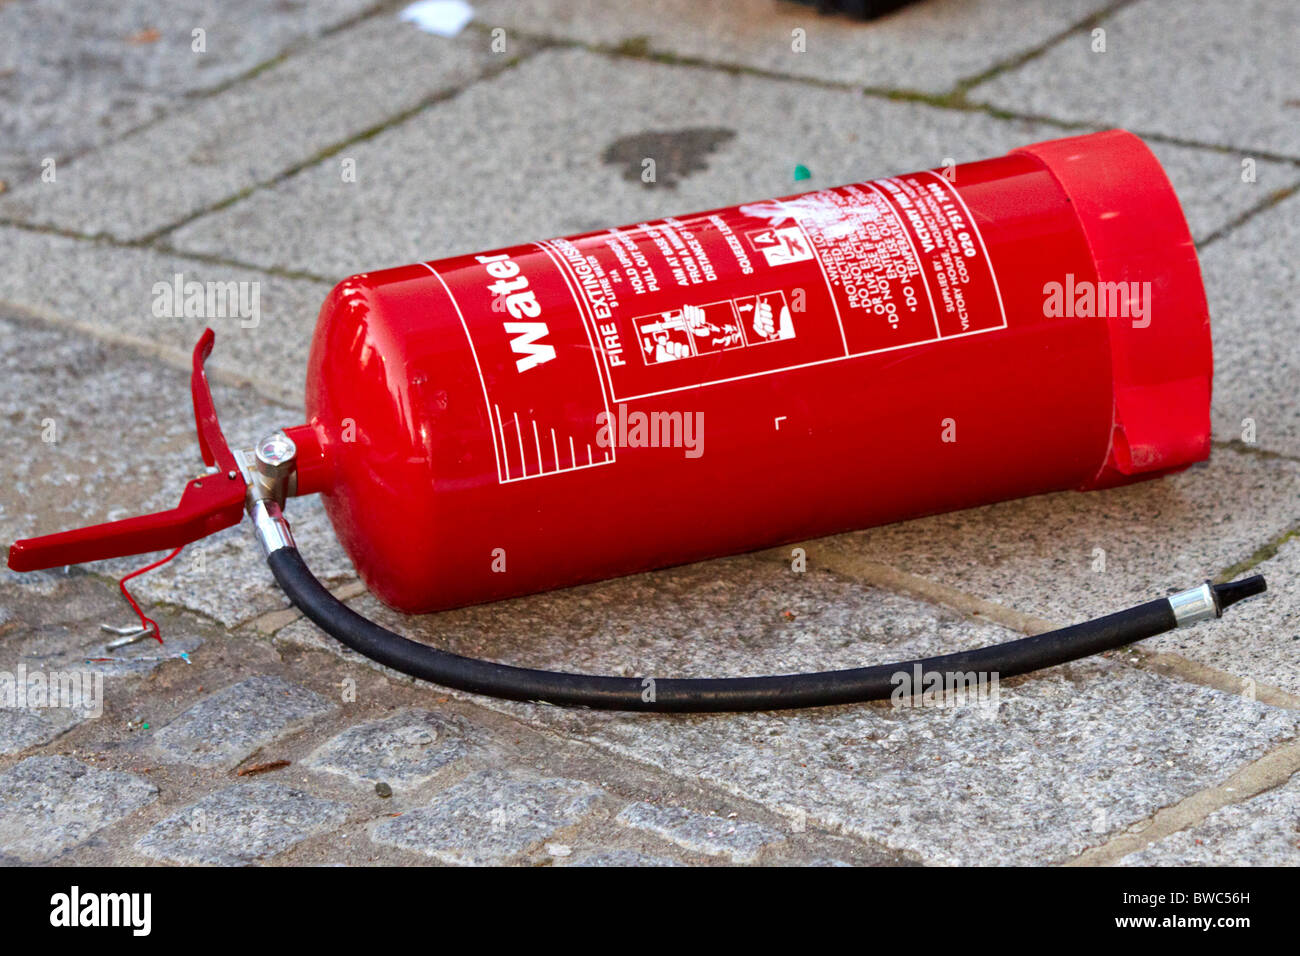 Fire extinguisher thrown from roof during student protests against tuition fees Stock Photo